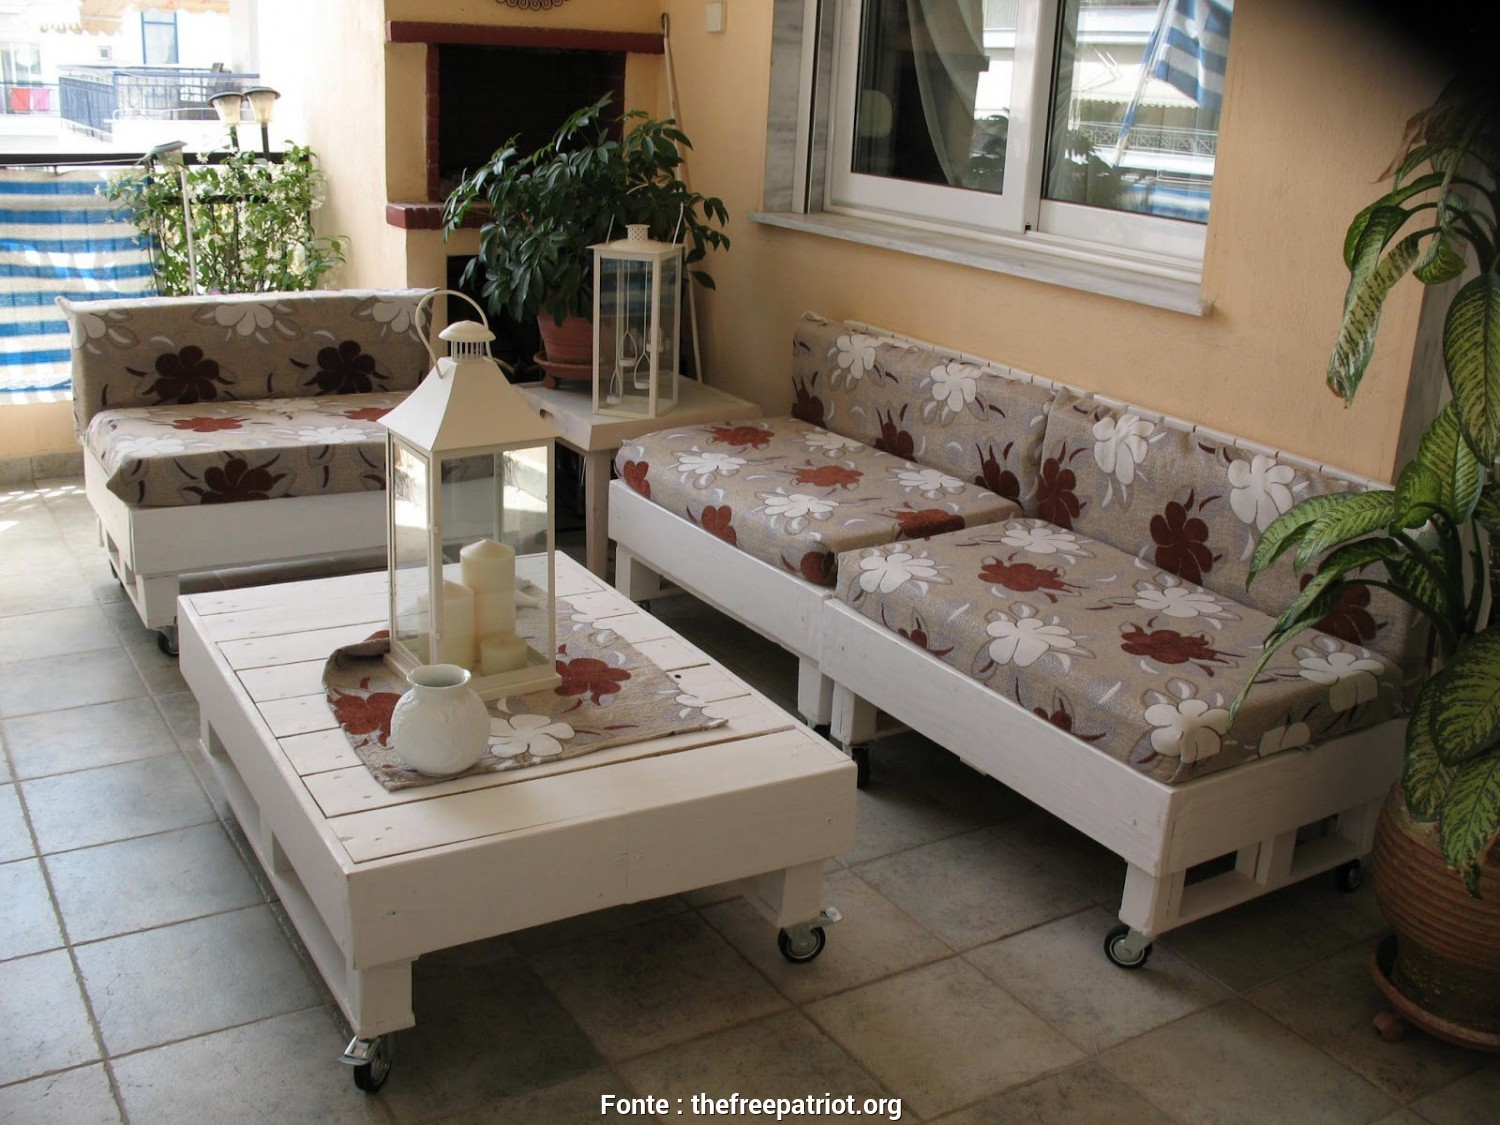 Divani Pallets, Bellissimo Sofas From Pallets (Pallet) With Their, Hands, Photos